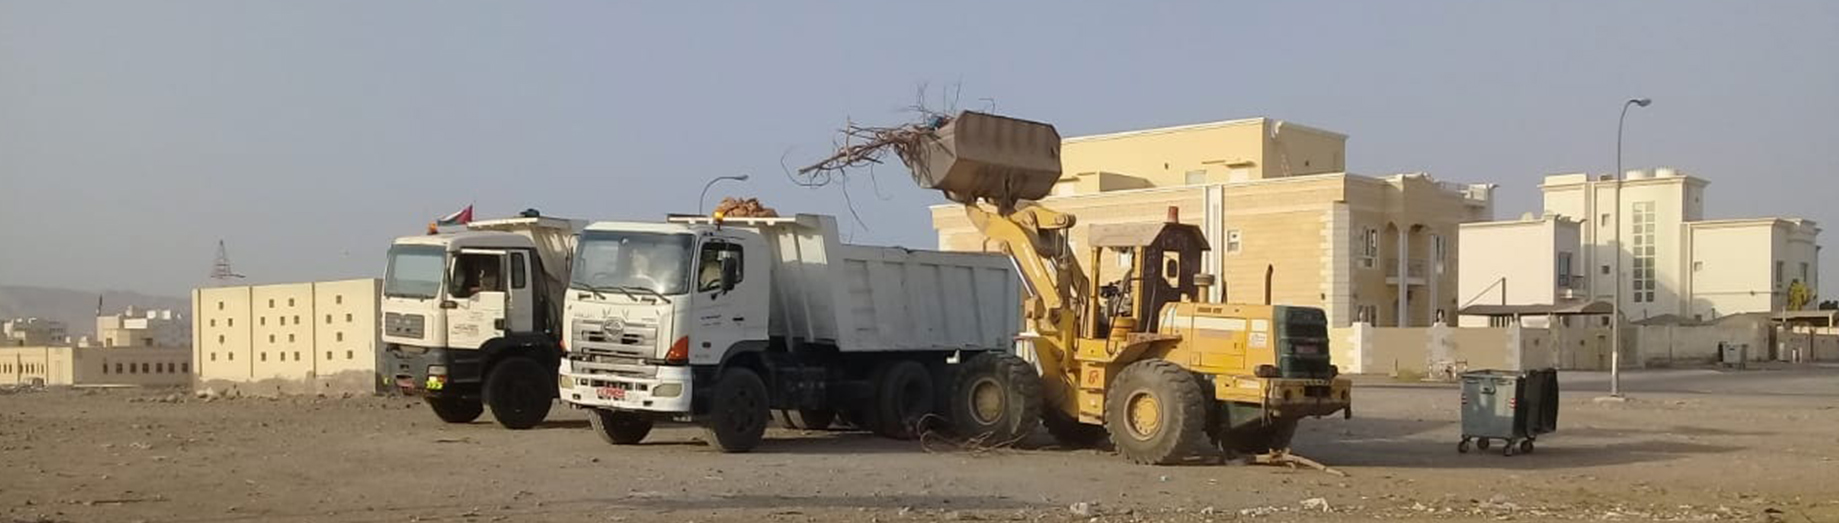 Waste Operations for Muscat Governorate (M2)